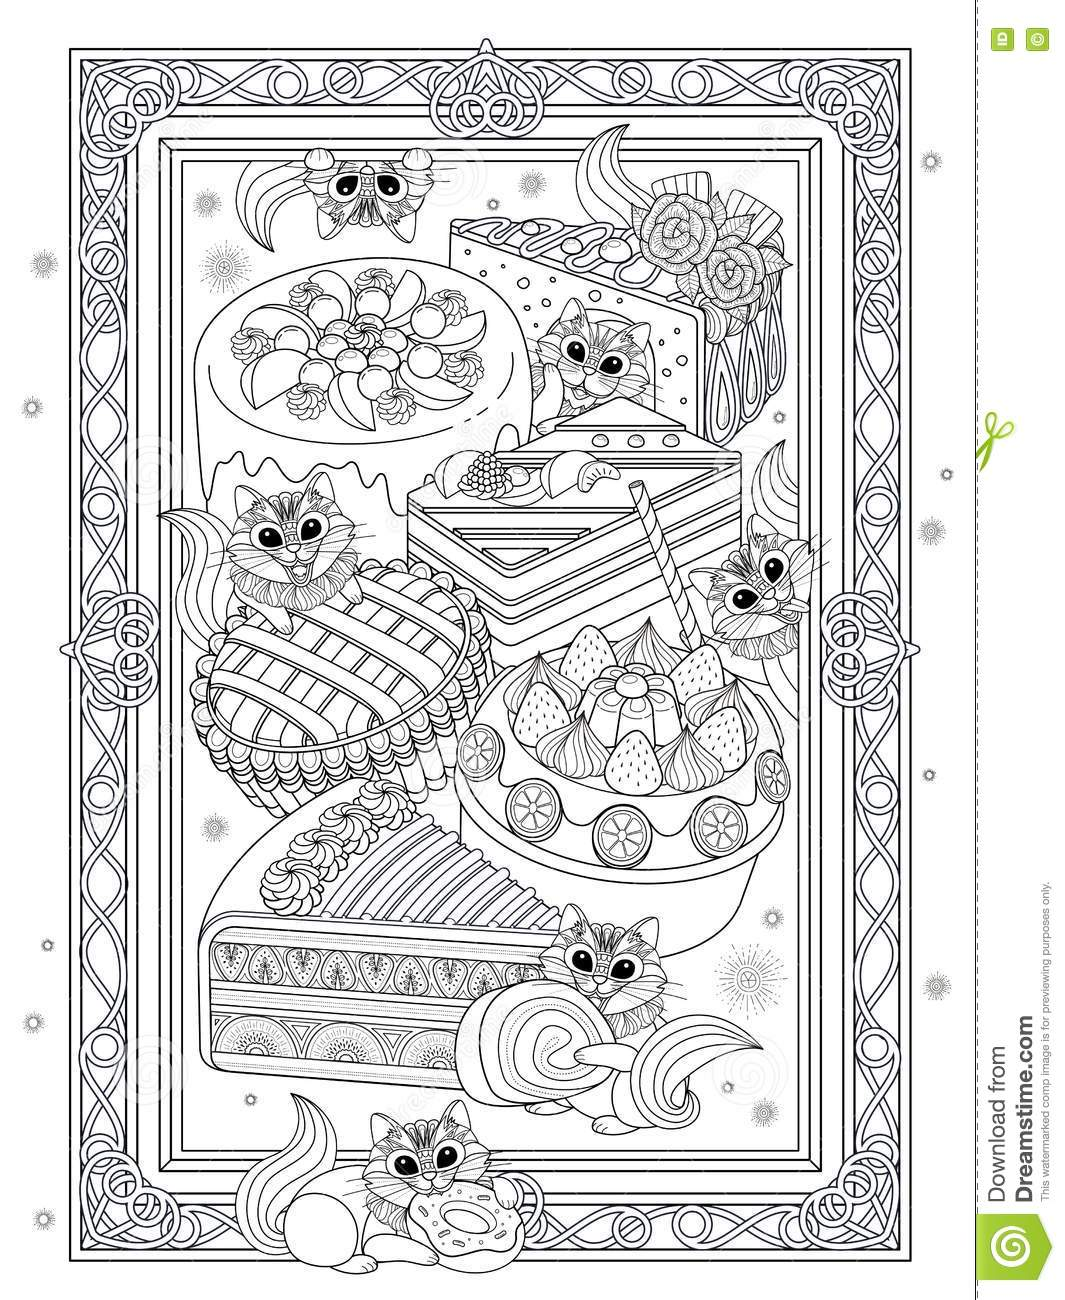 Pastries Adult Coloring Page Stock Illustration